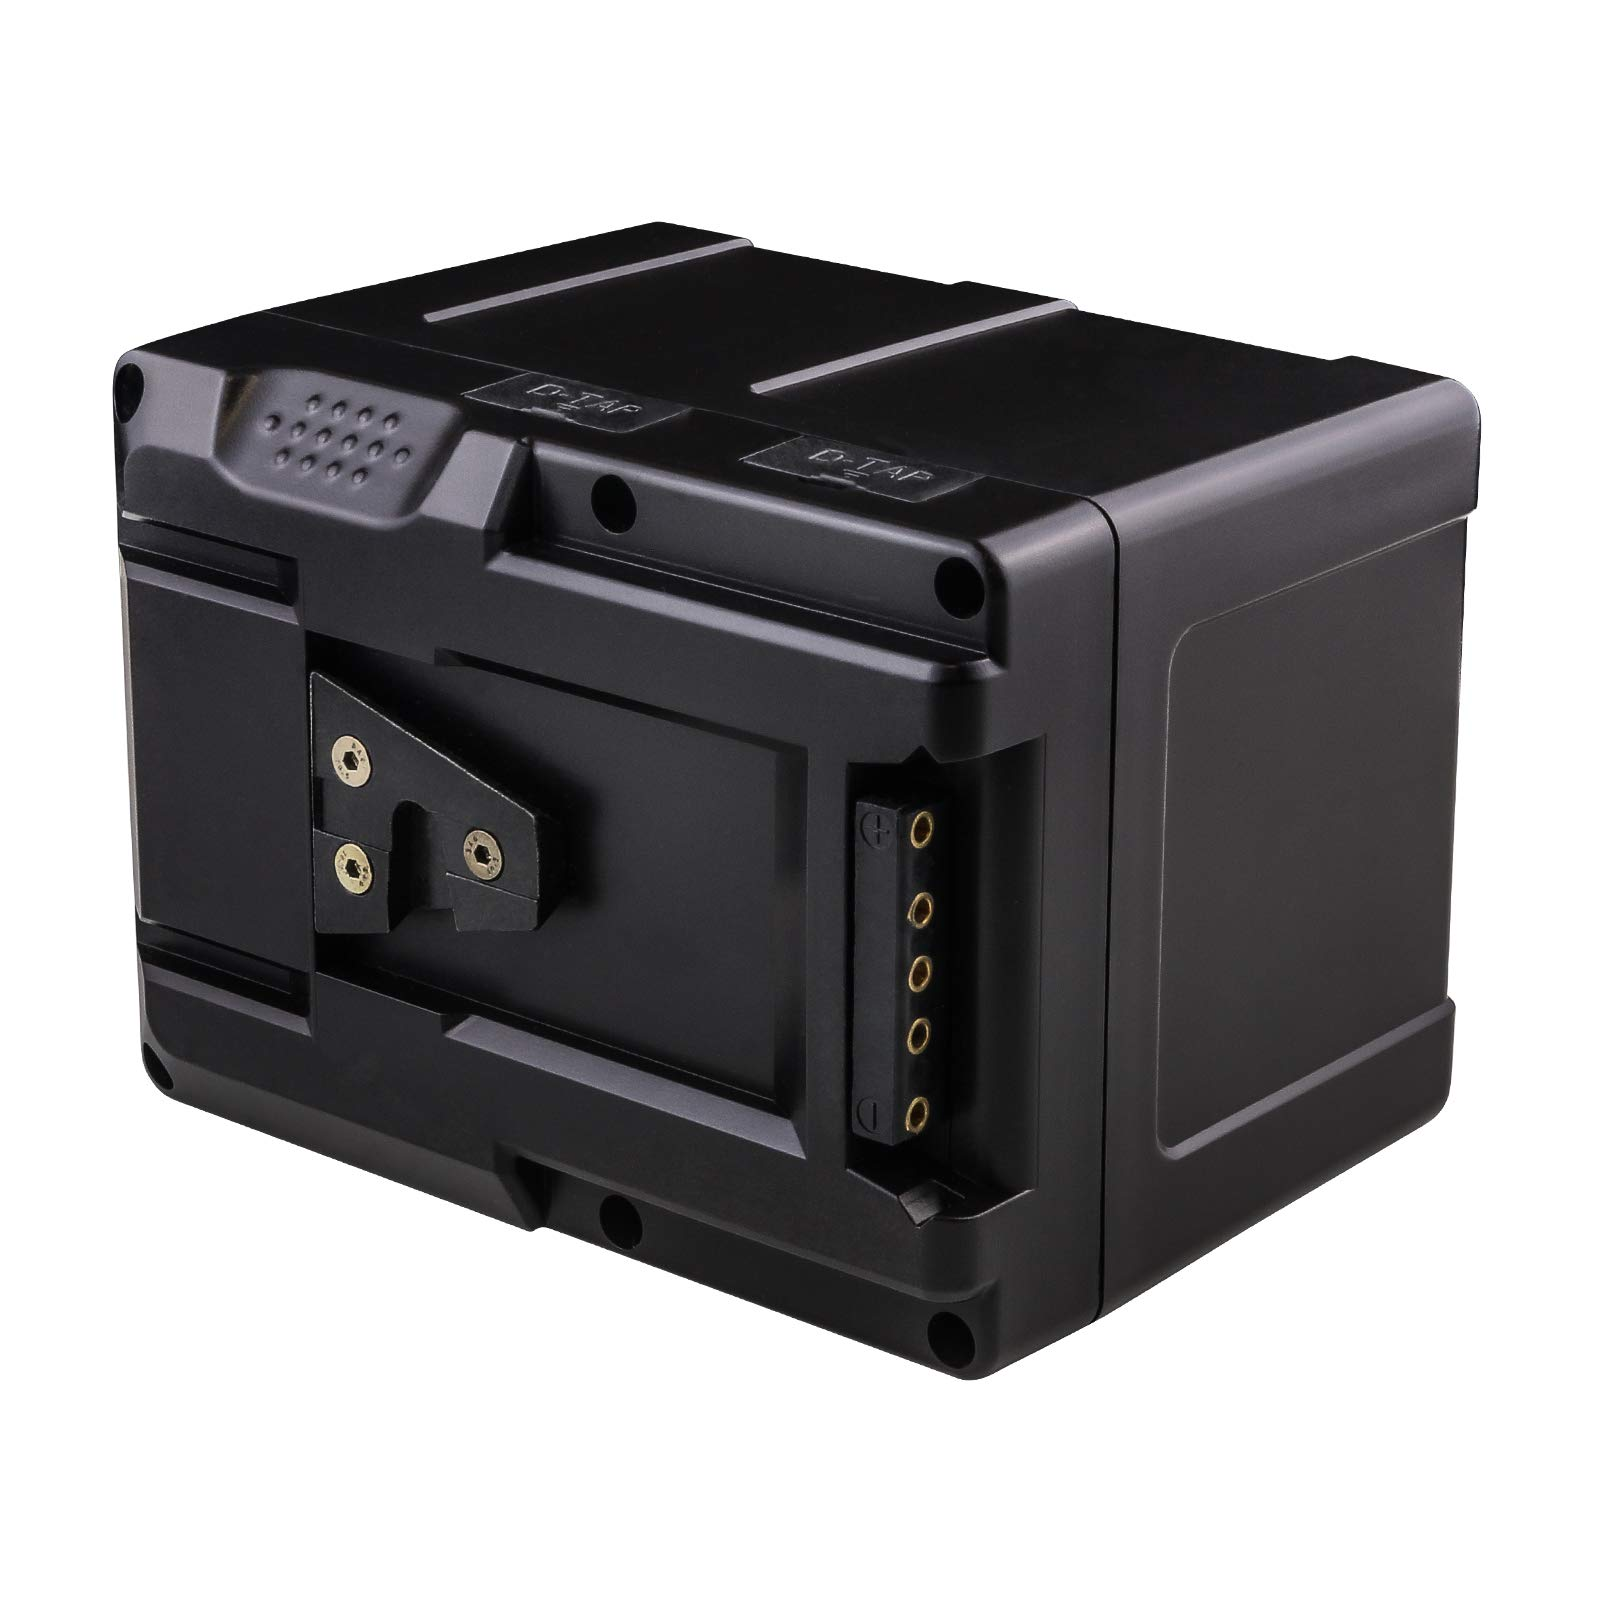 V-Lock Battery and Sony Professional Video Camcorders BP-95W BP-150W BP-190W Kastar High Capacity Battery 14.8V 15600mAh 230Wh Replacement for Sony BP-FL75 BPFL75 V-Mount Battery